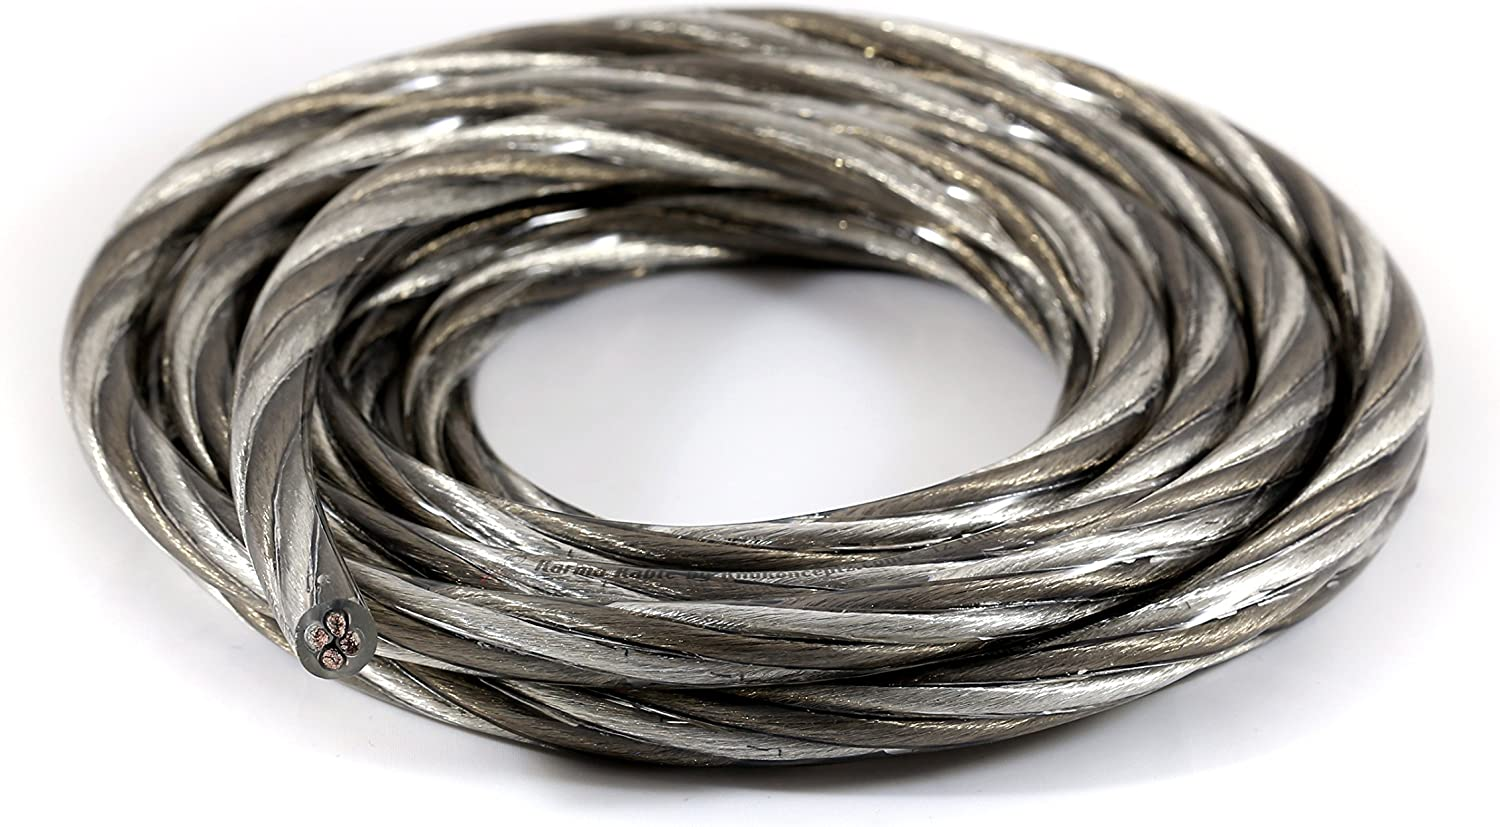 Import KnuKonceptz Karma All items free shipping Kable Twisted 12 OF Bi-Wire Speaker Wire Gauge